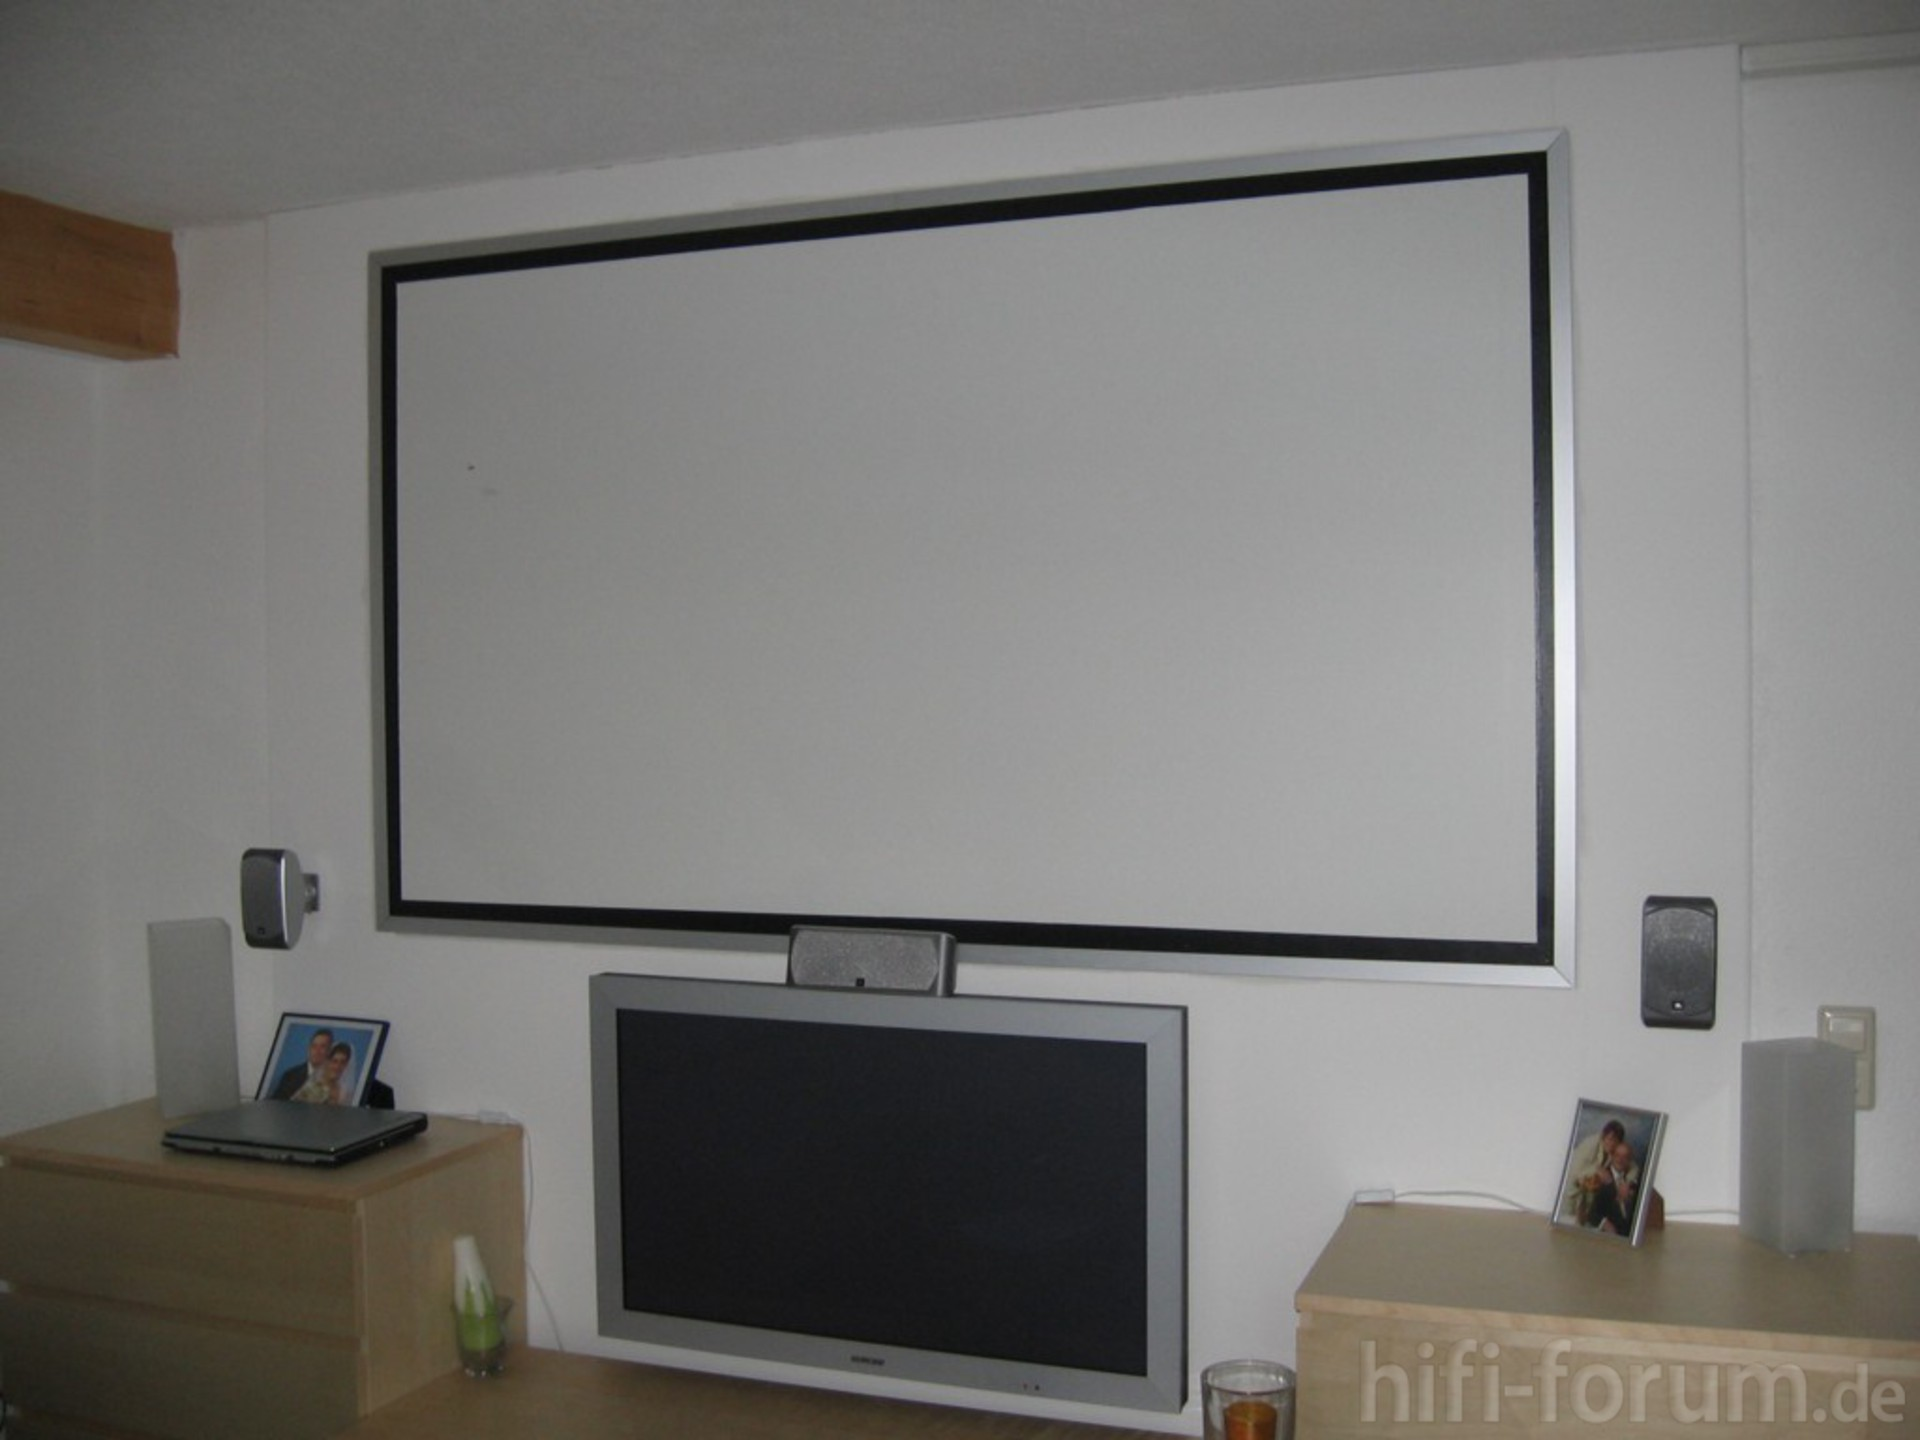 media wand leinwand heimkino leinwand media surround wand hifi bildergalerie. Black Bedroom Furniture Sets. Home Design Ideas